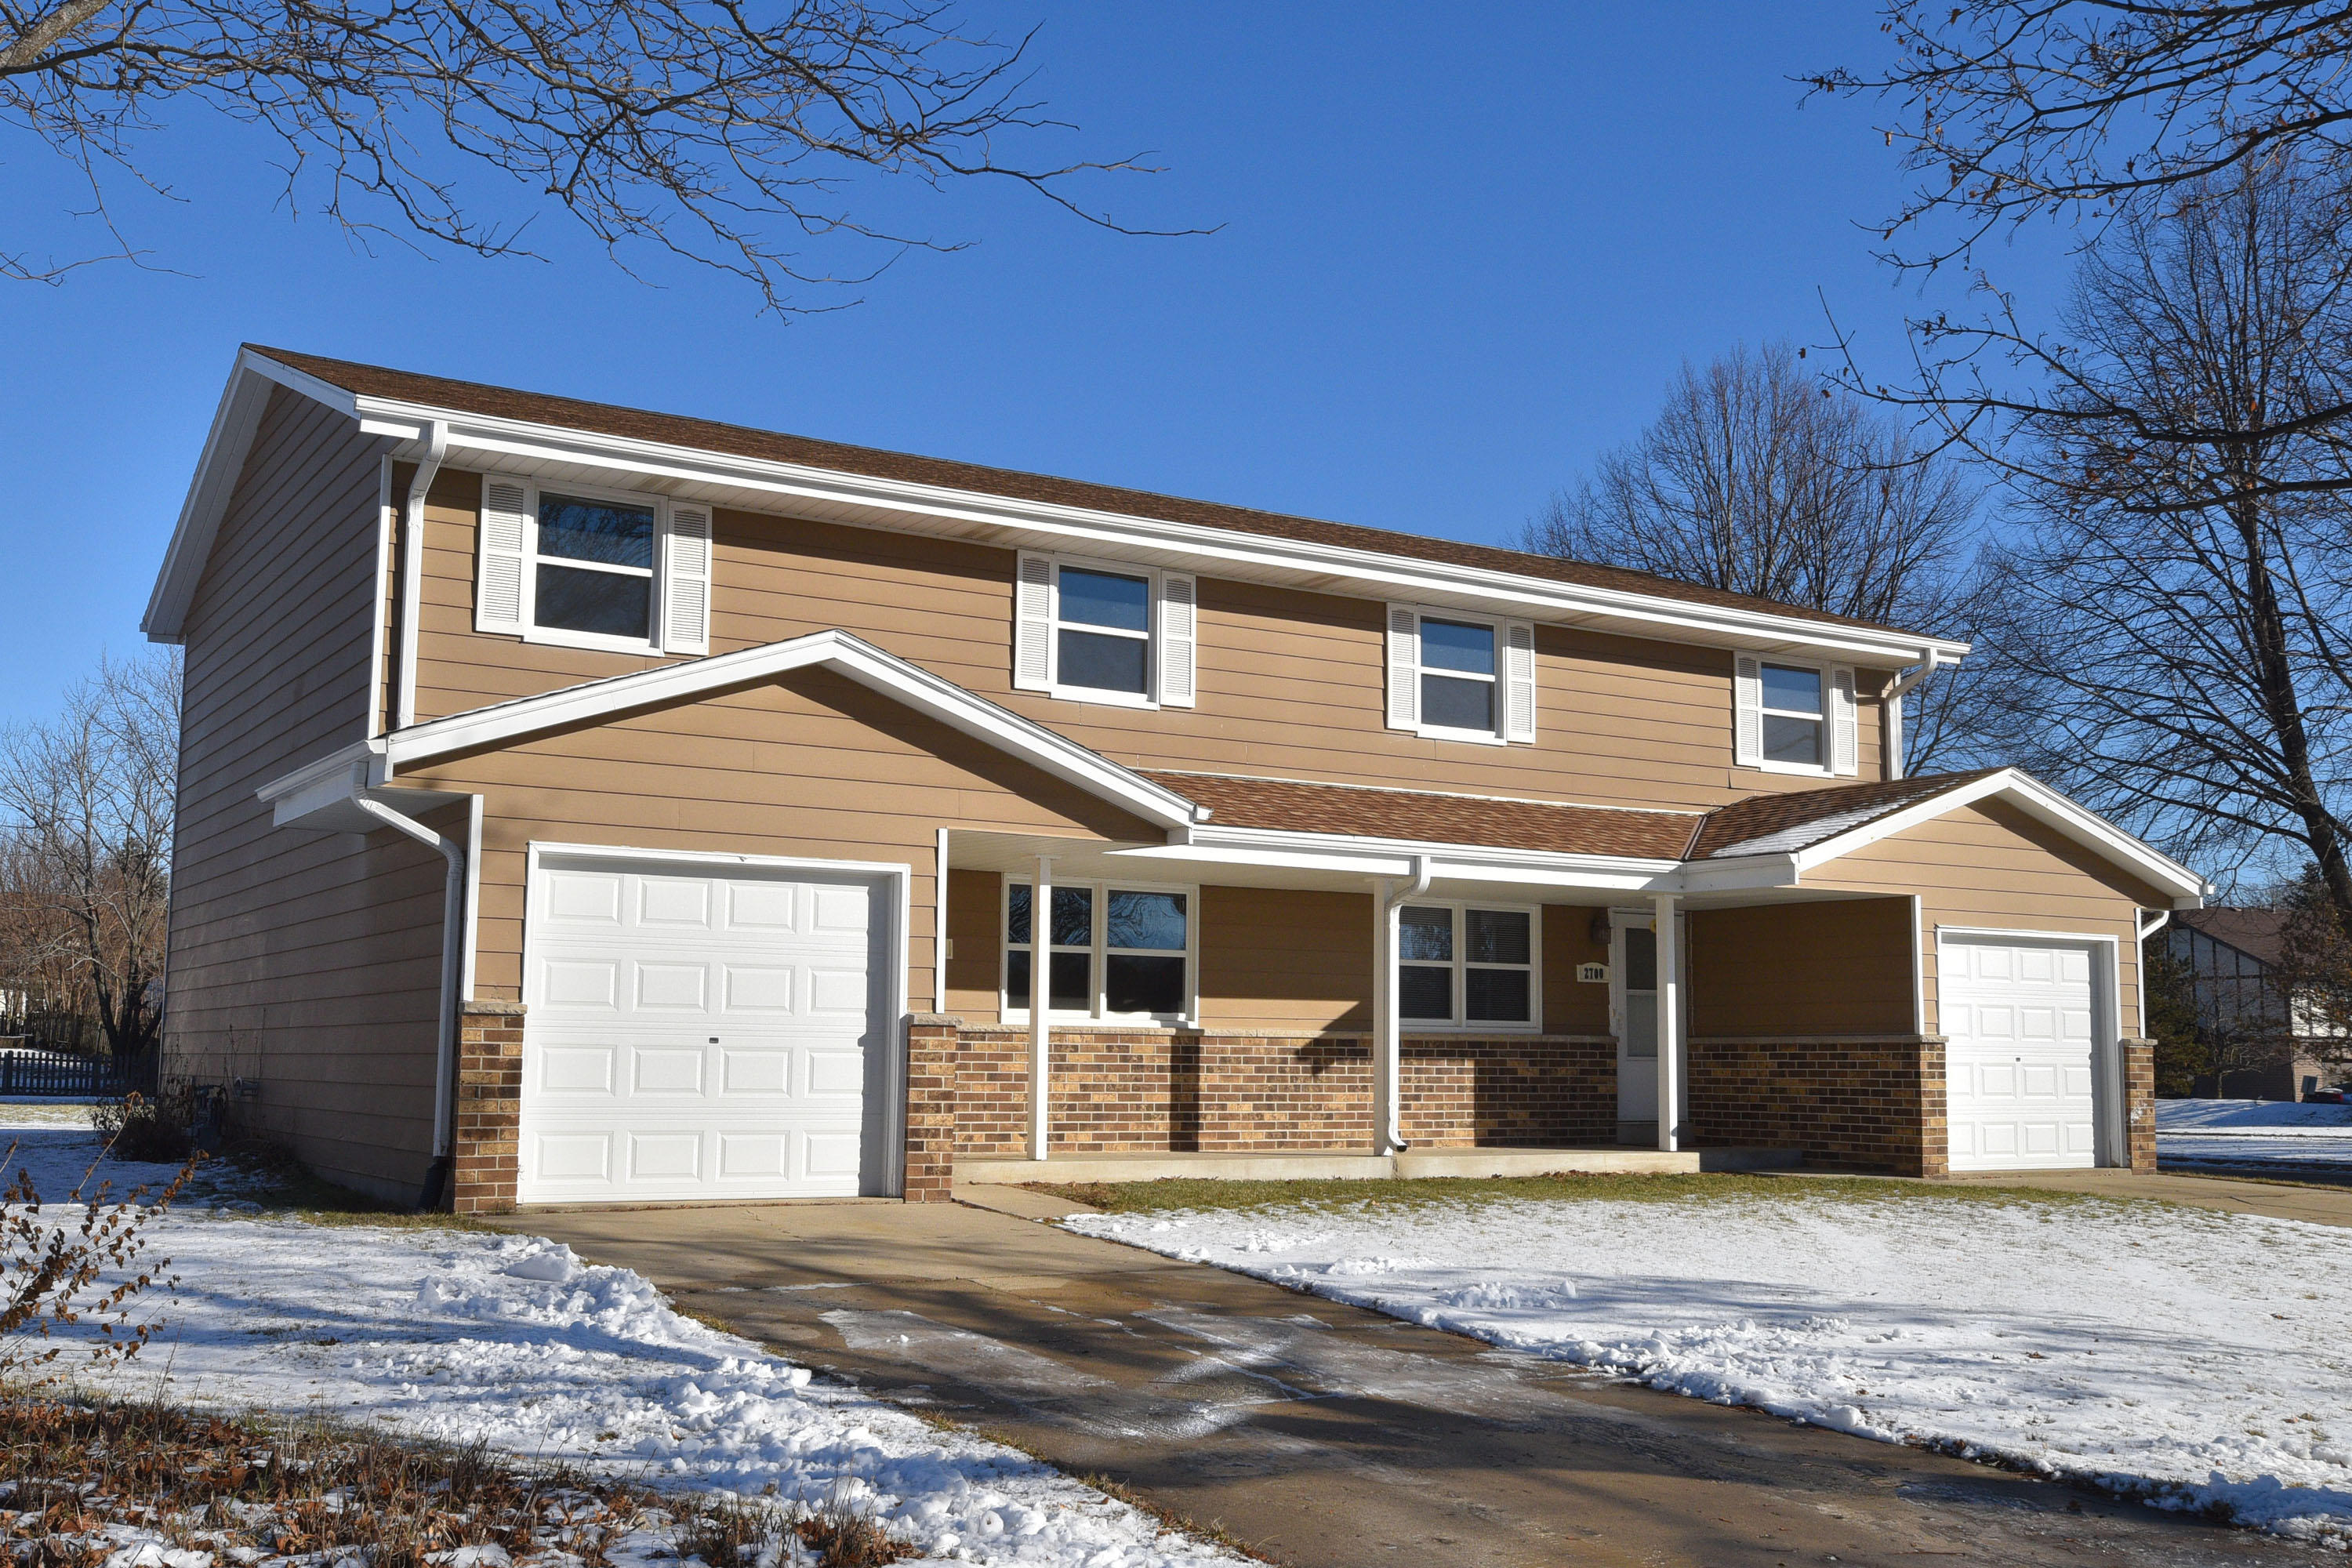 2700 Albany Ct, Waukesha, Wisconsin 53188, 3 Bedrooms Bedrooms, 6 Rooms Rooms,1 BathroomBathrooms,Two-Family,For Sale,Albany Ct,1,1618018